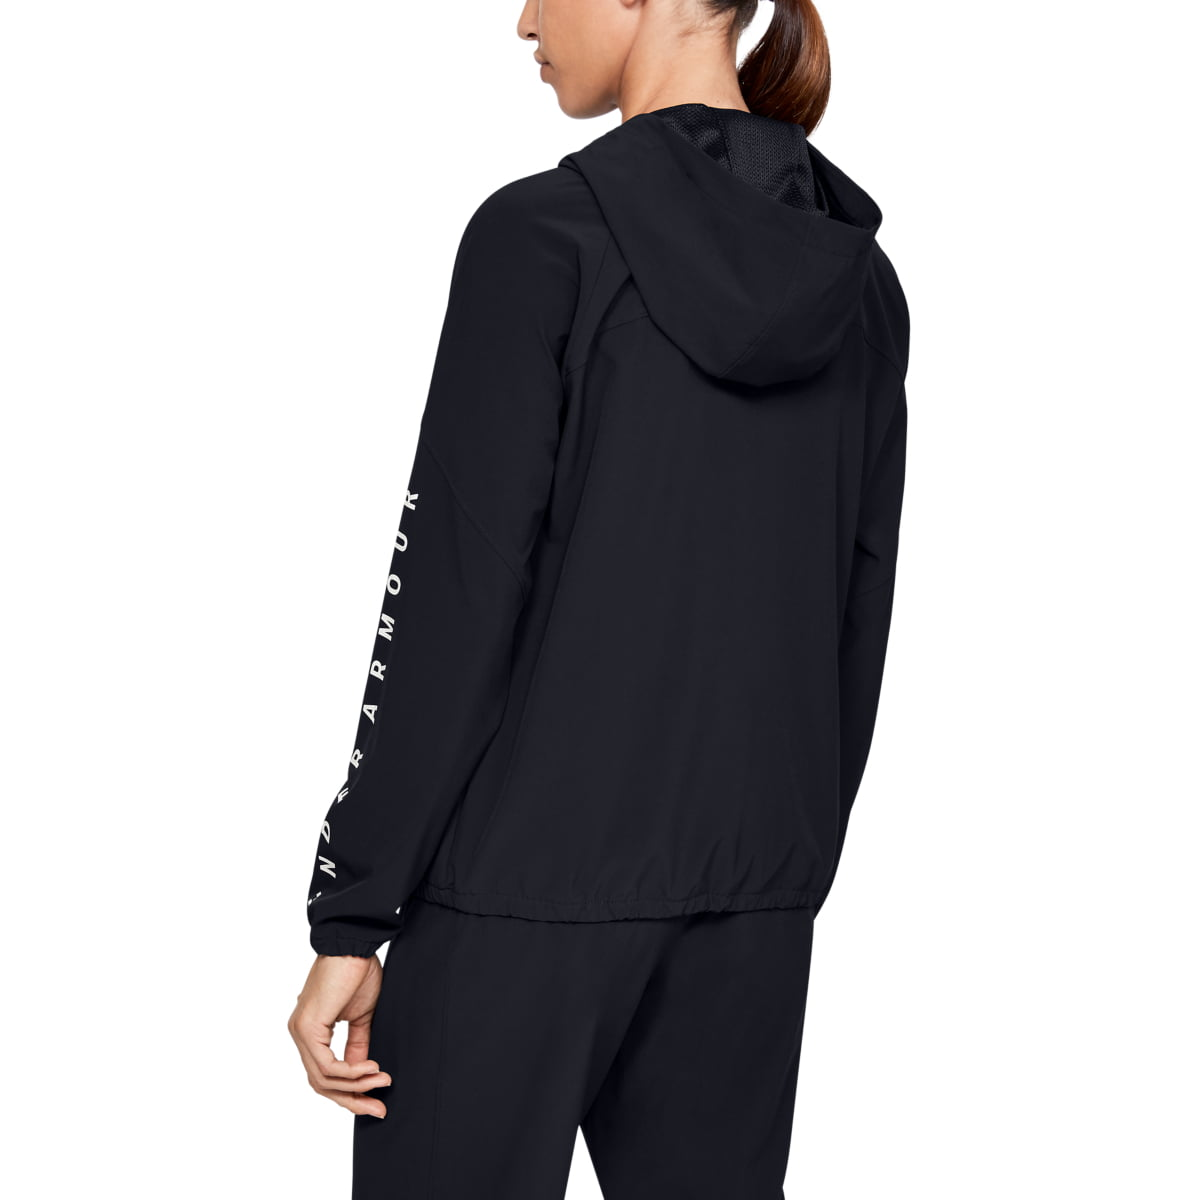 Hanorac Under Armour fitness Woven Branded